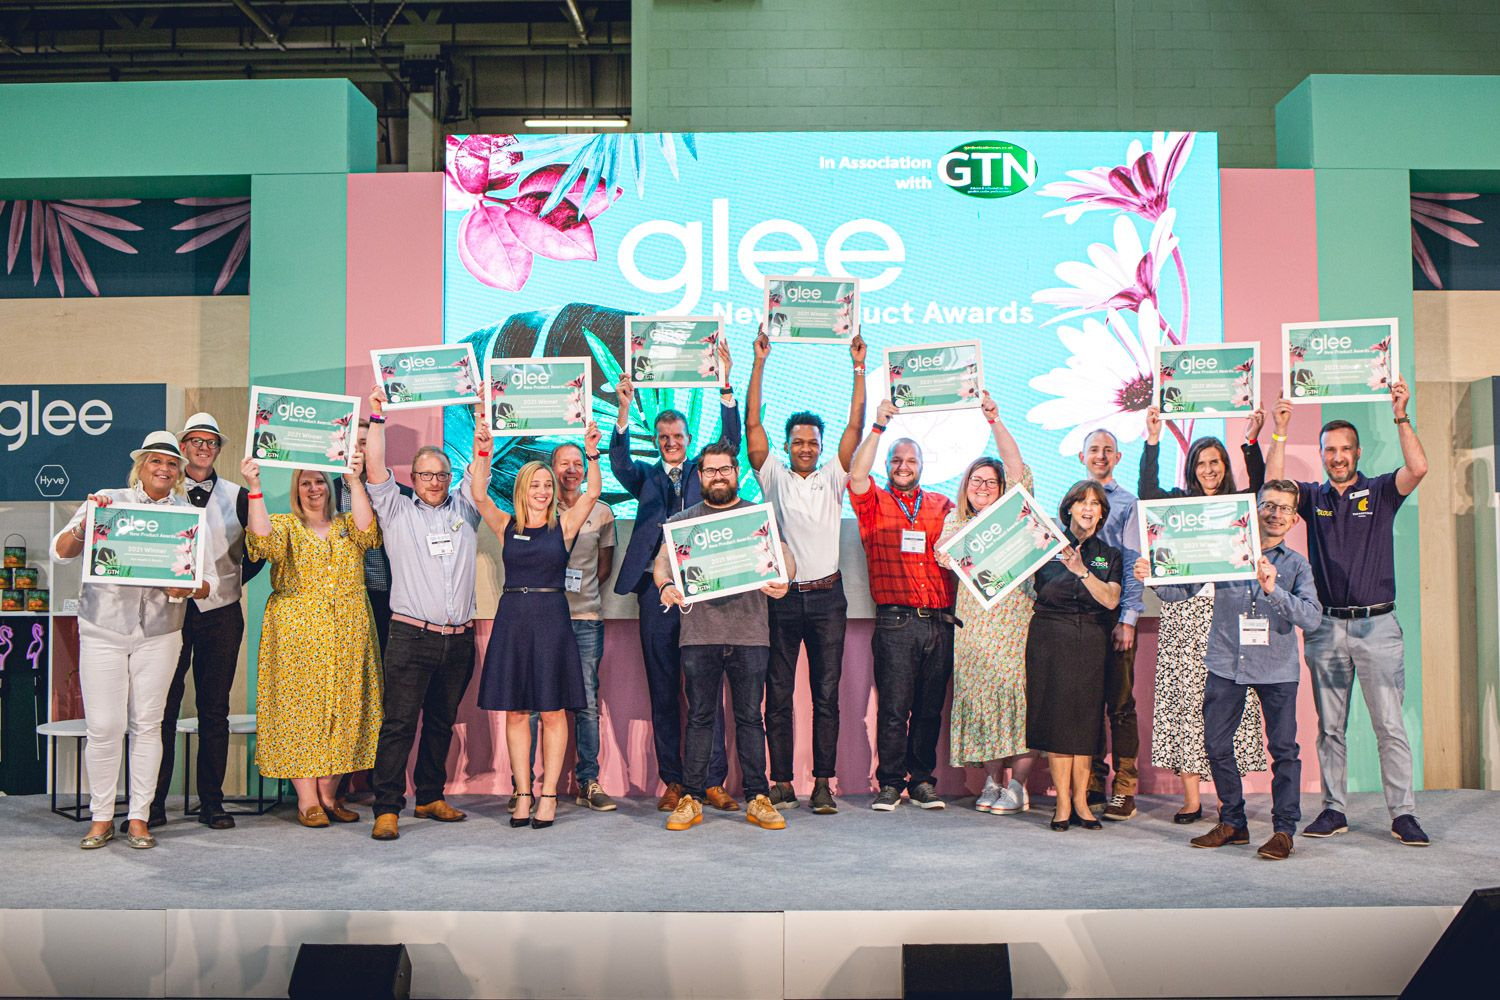 The Glee New Product Showcase 2021 winners are revealed